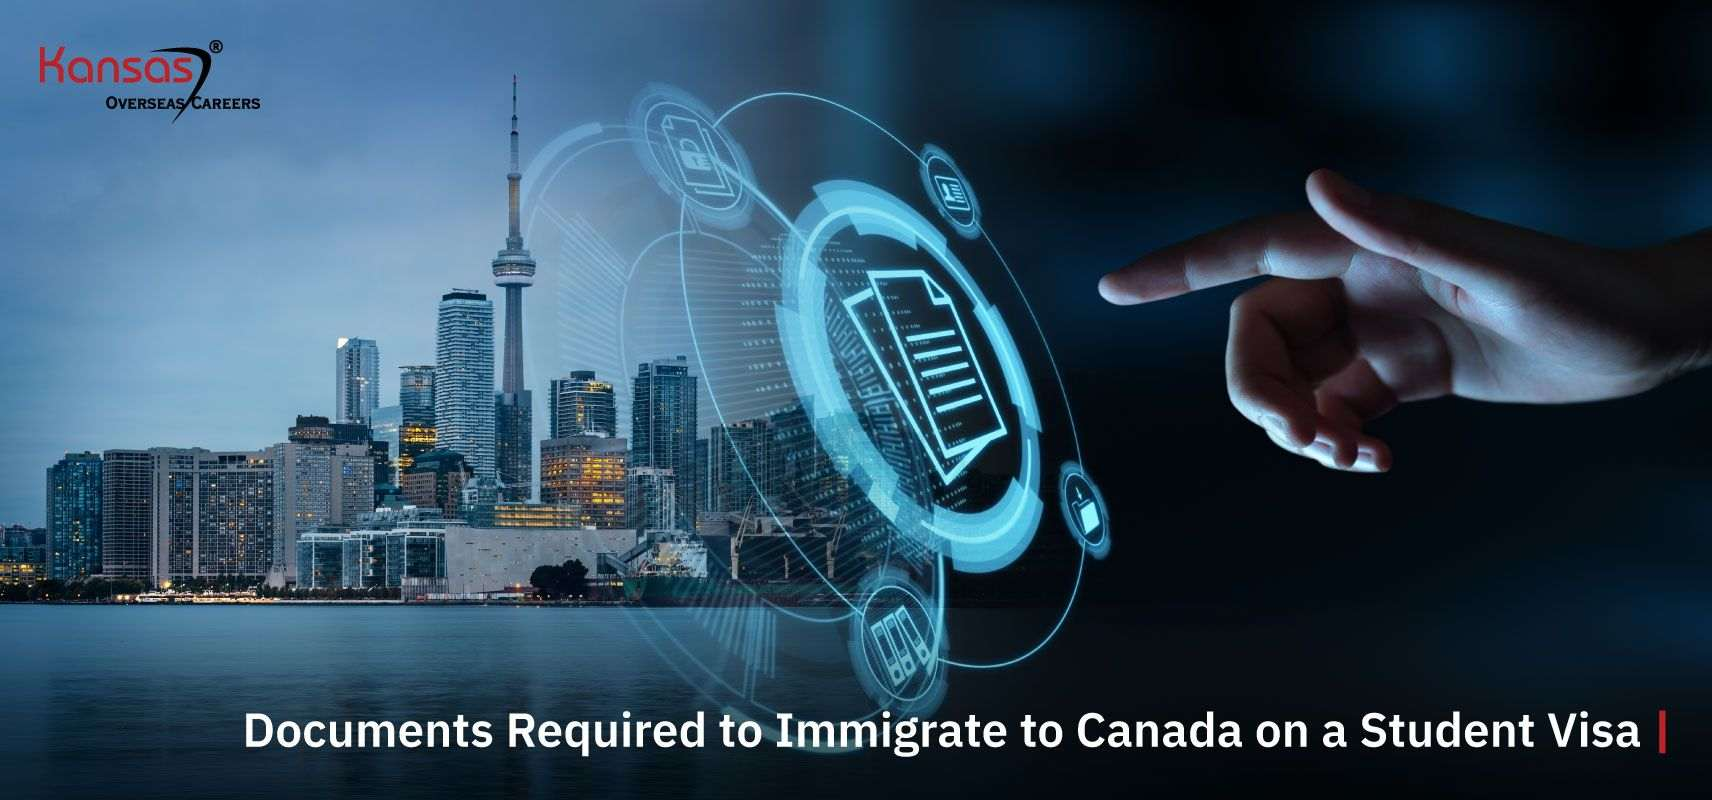 Documents-Required-to-Immigrate-to-Canada-on-a-Student-Visa-